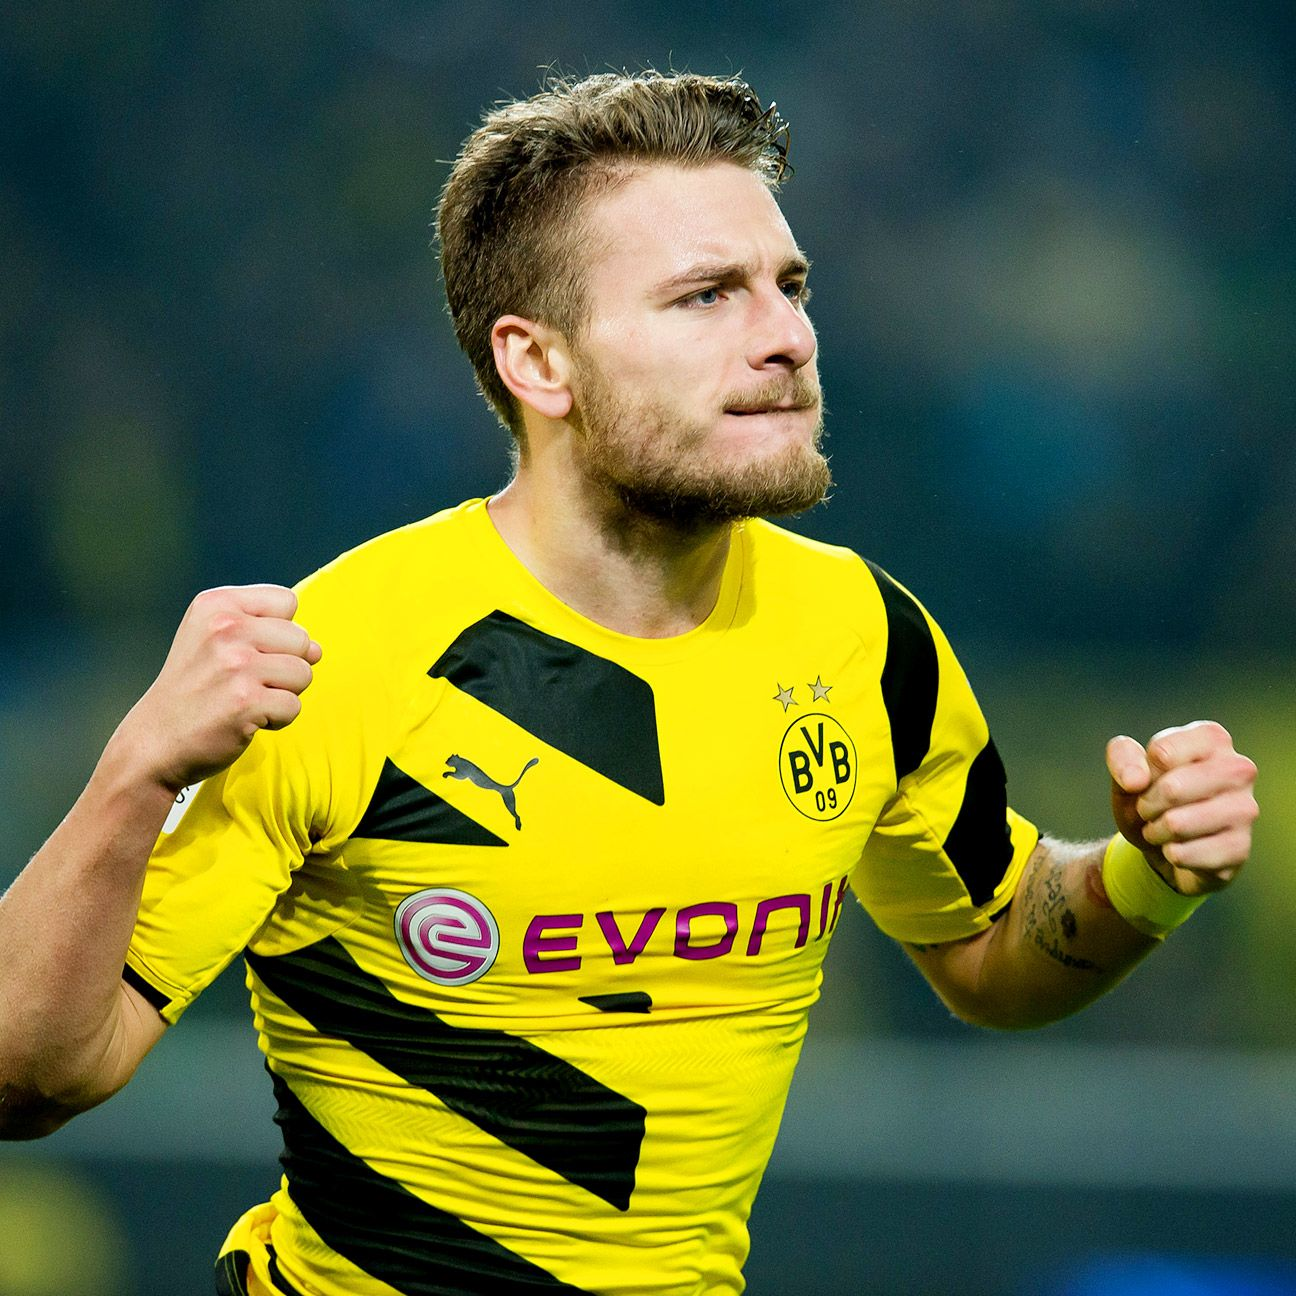 Ciro Immobile scored a confidence-boosting goal in Borussia Dortmund's 2-2 draw on Wednesday.